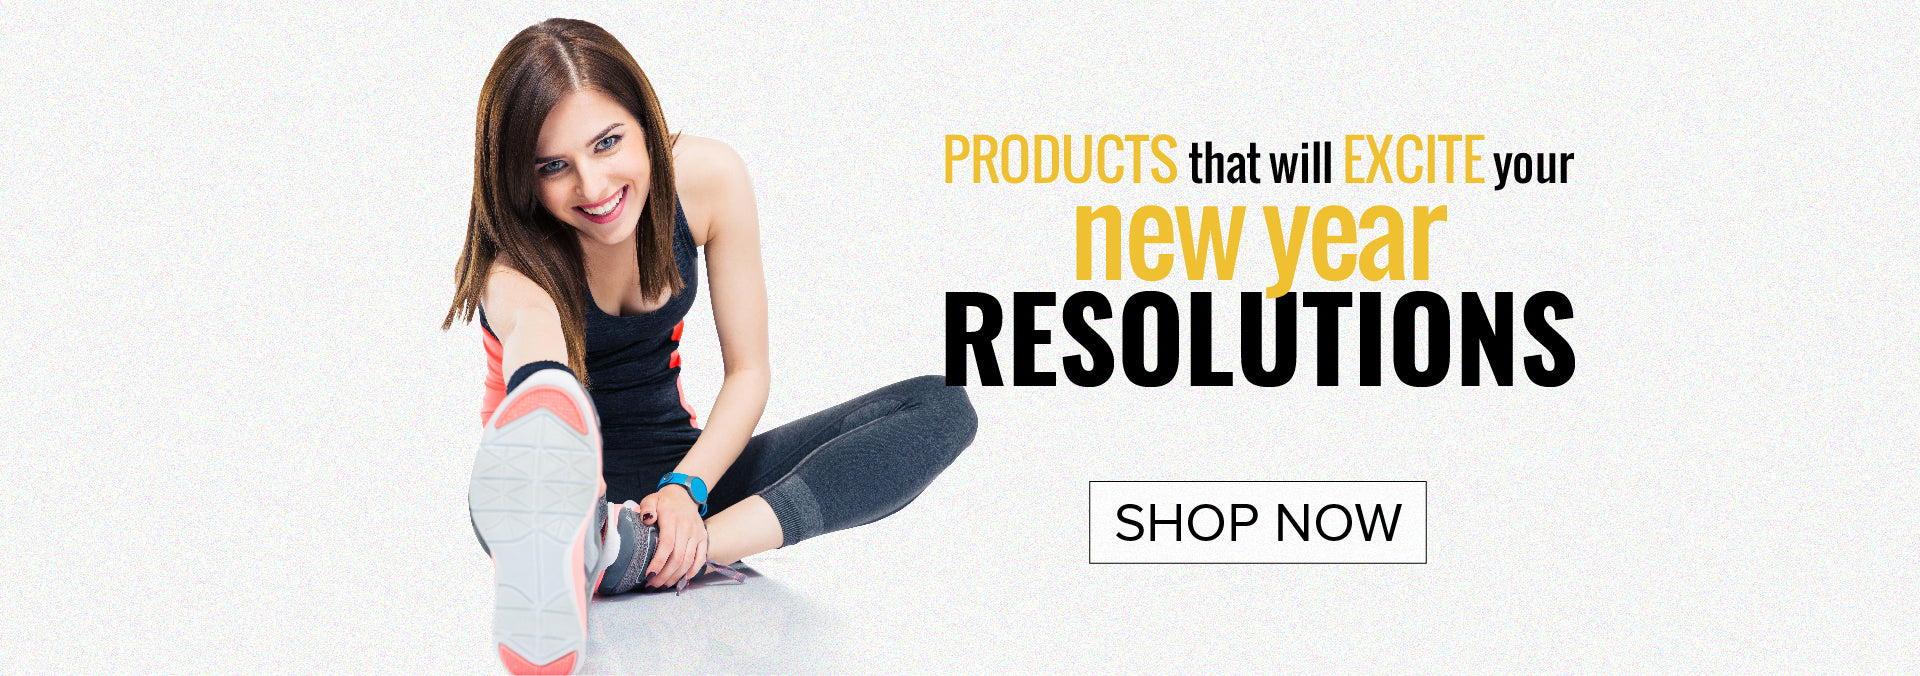 Skymall - New Year Resolutions Banner 1920x675 rev02